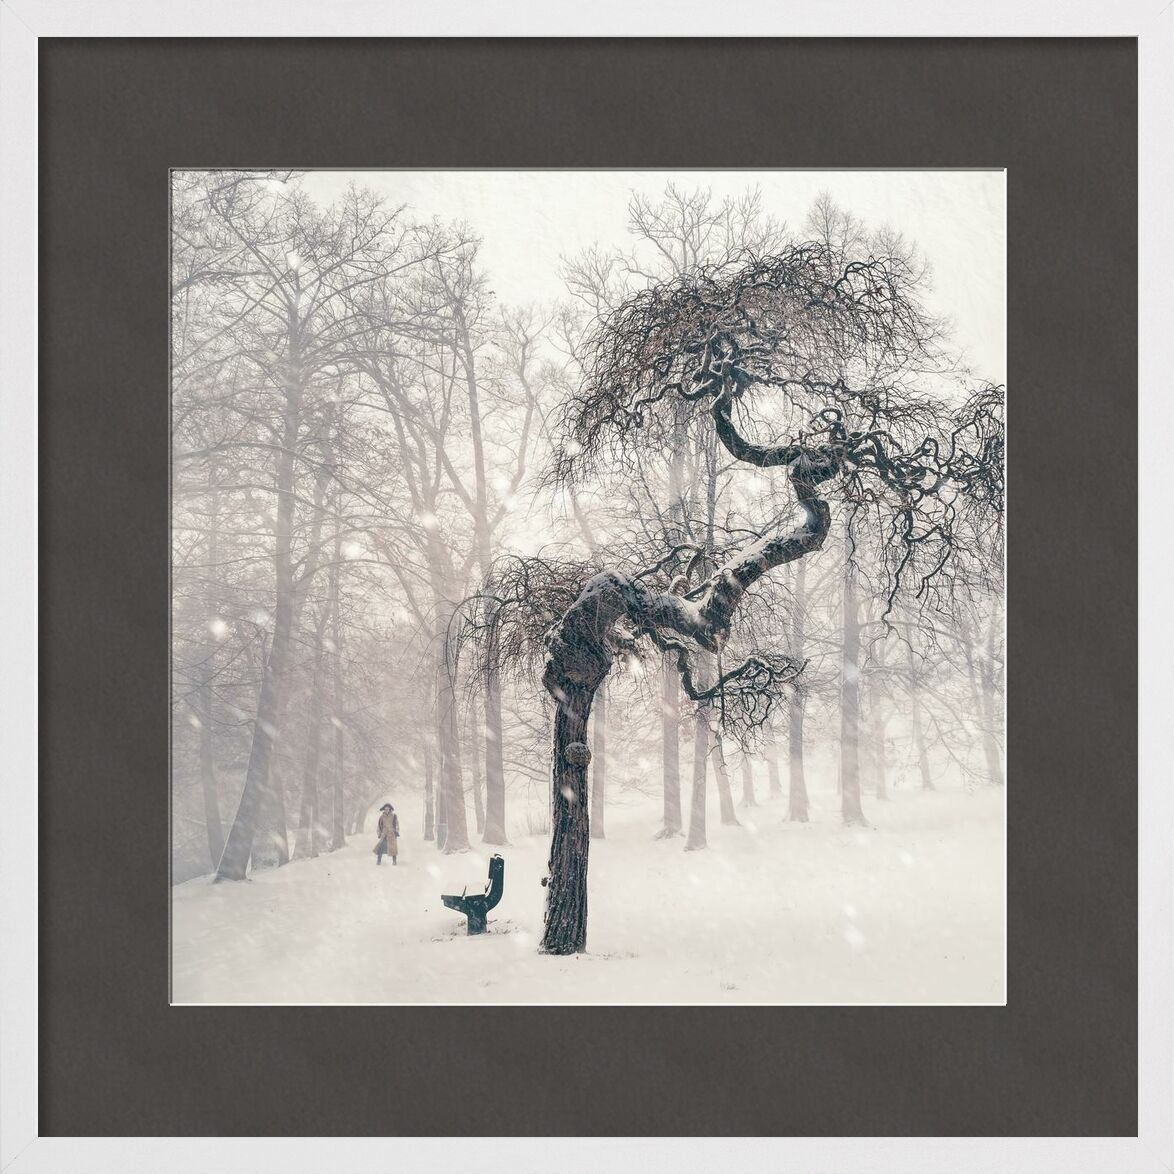 Resistance from Aliss ART, Prodi Art, woods, snowstorm, dark, branches, bench, winter, weather, trees, snowy, snow, person, nature, fog, landscape, icy, frozen, frosty, freezing, forest, foggy, cold